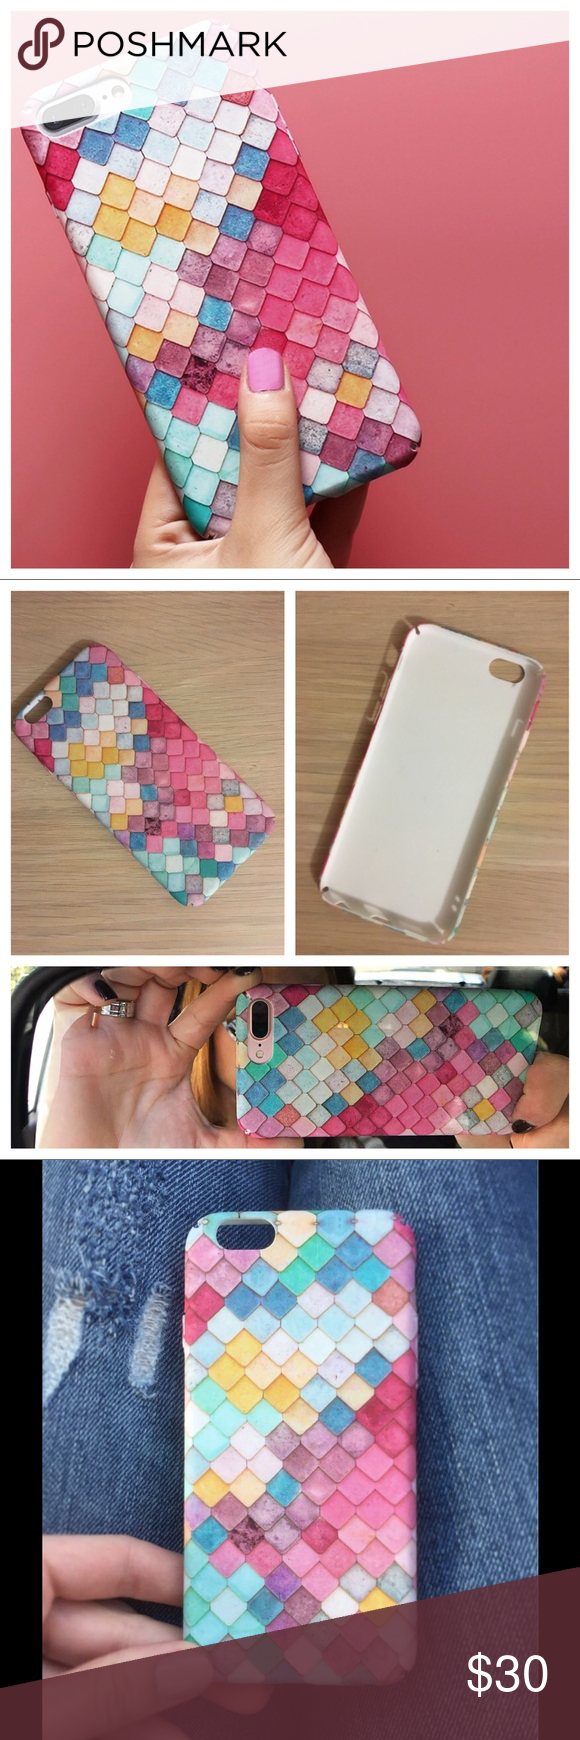 Mermaid Scale iPhone 7 Textured 3D Glow Case Made for the iPhone 7, will fit the iPhone 6s as well. Item has a 3D look and textured feel. Also glows in the dark (pic 6)!  ✅Bundle Discounts✅Please use 'Make an Offer' tool for all Bundles✅ 🚫No Trades🚫No Offers (unless bundled)🚫  Tag words: wildfox, boho, kawaii, harajuku, gypsy, mermaid, uniform, fish, summer, beach, scales, 3D, textured, pastel, iPhone, phone, case, glow, trendy Accessories Phone Cases